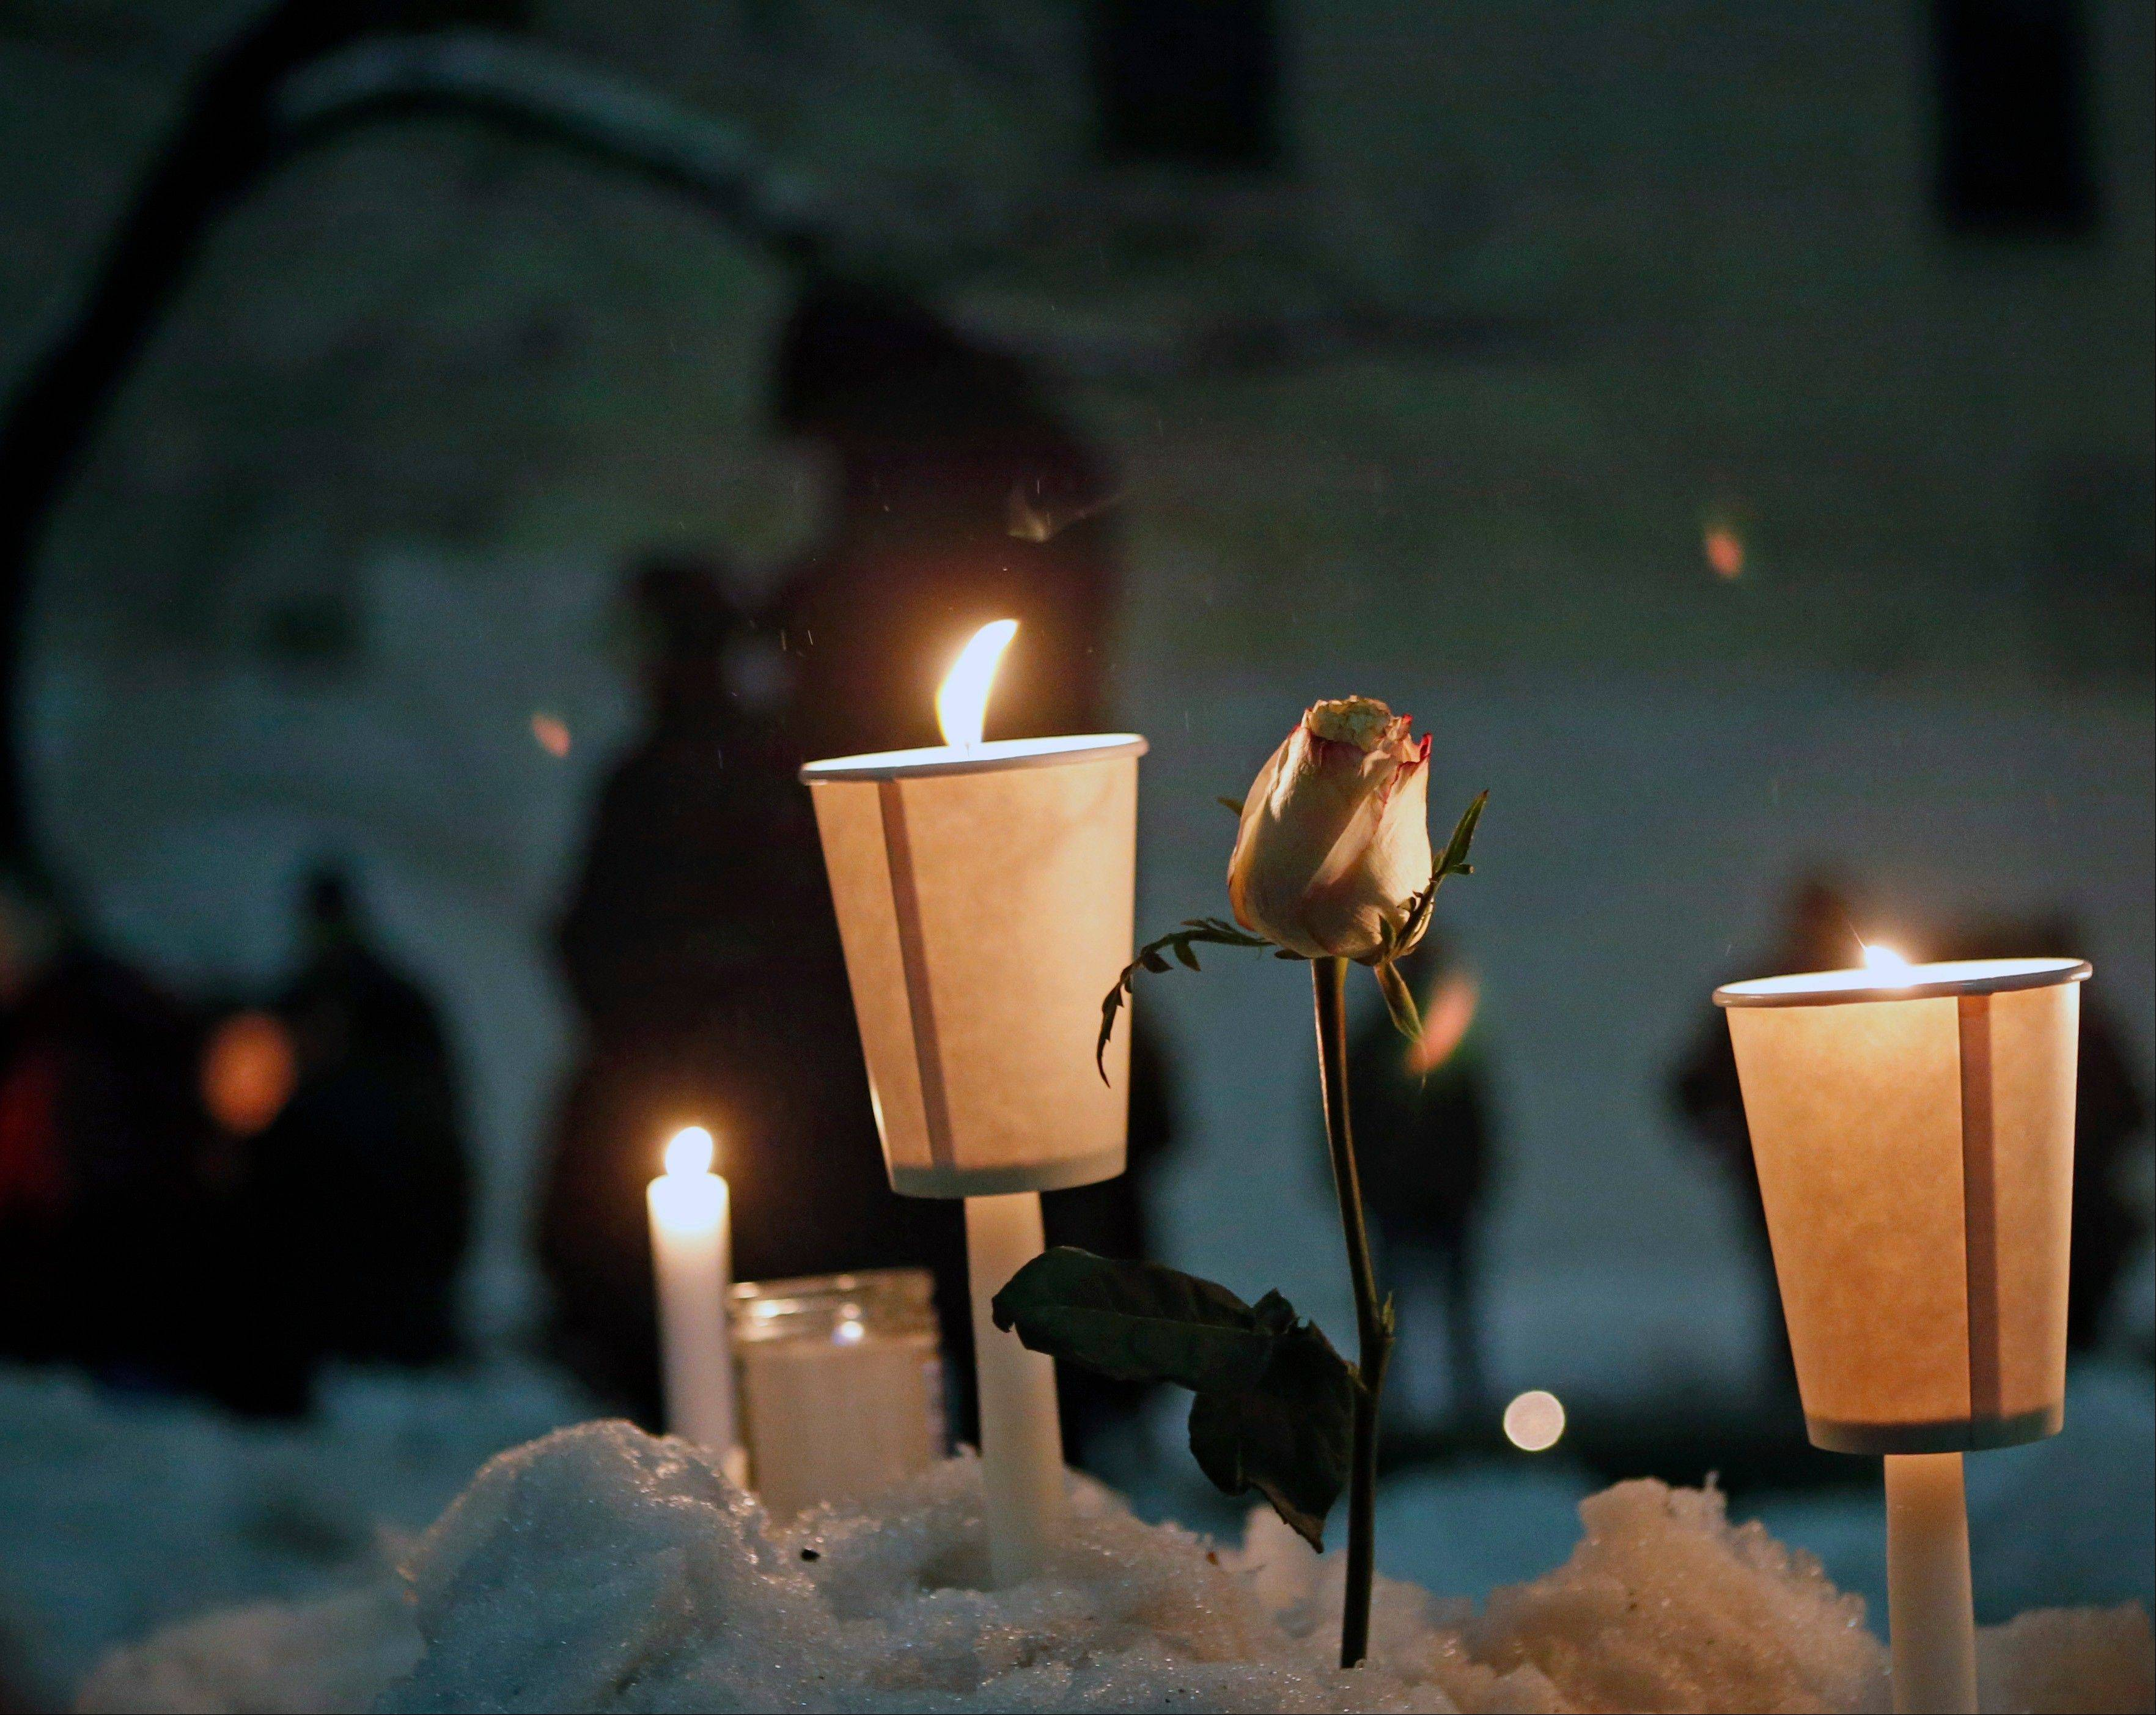 Candles burn alongside a rose left in a snowbank following a candlelight vigil sponsored by the Labyrinth Theater Company in the courtyard of the Bank Street theater for actor Philip Seymour Hoffman, a company member and former Labyrinth artistic director, Wednesday, Feb. 5, 2014, in New York. Hoffman died on Sunday of a suspected drug overdose.